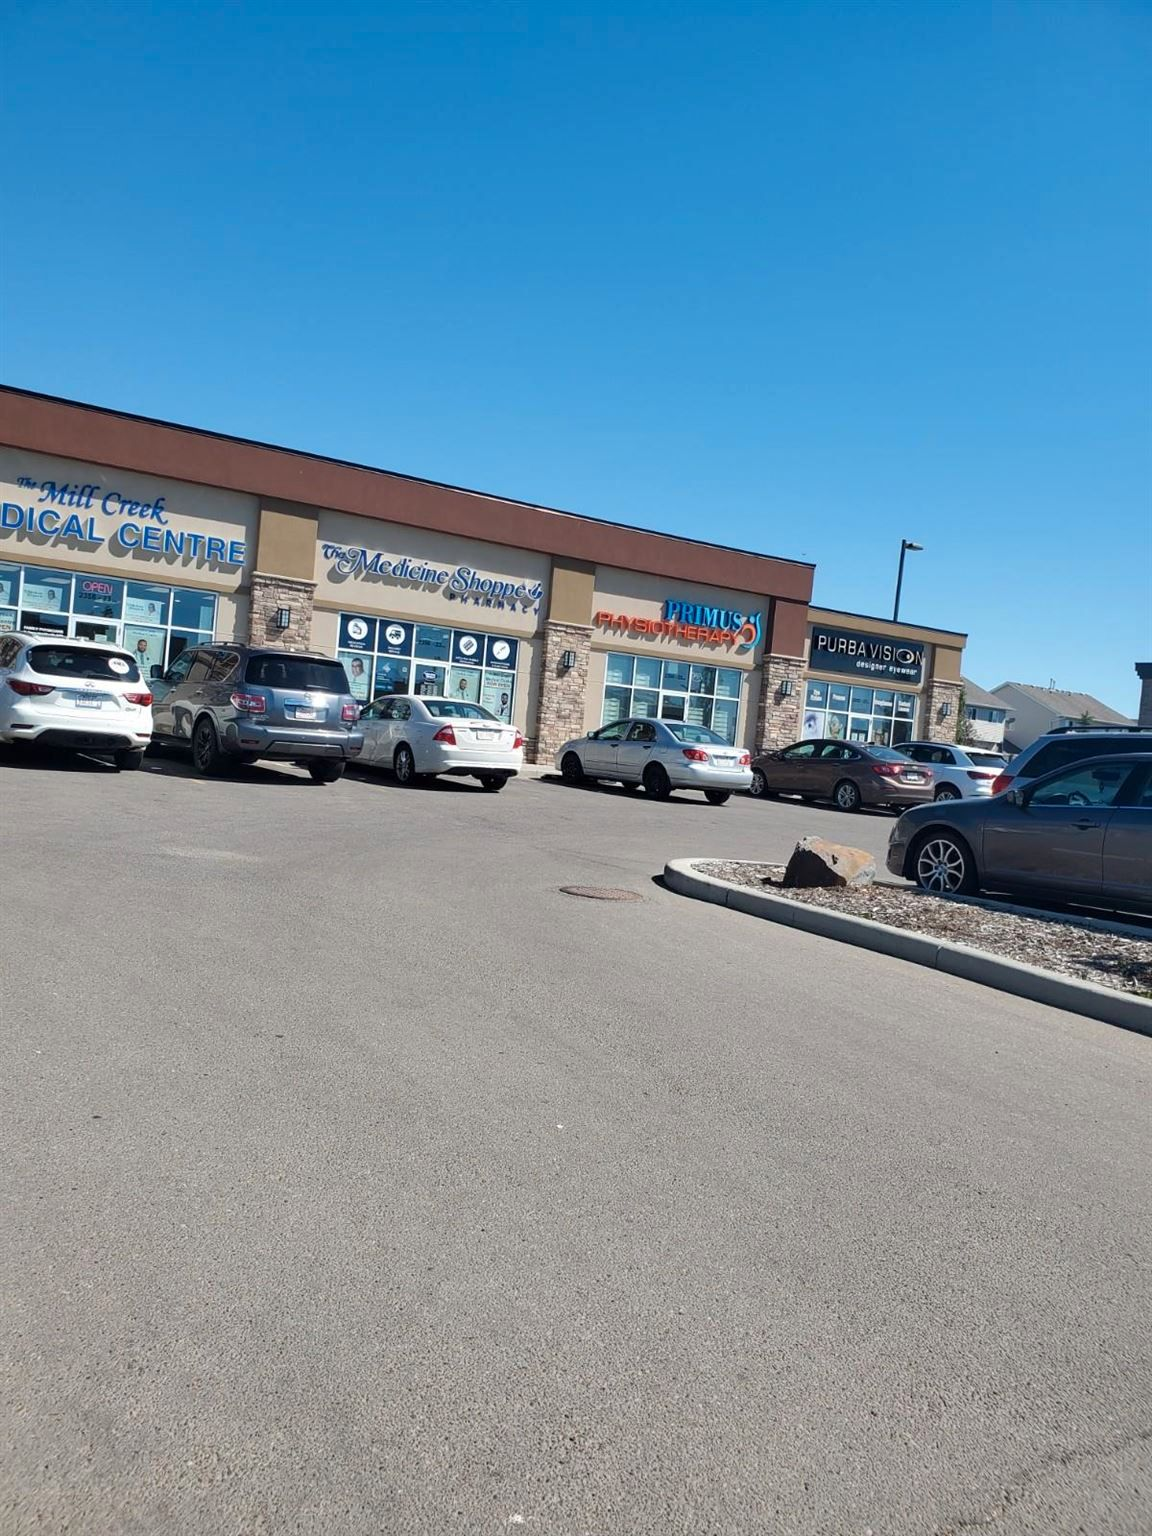 Main Photo: 2360 23 Avenue in Edmonton: Zone 30 Business for sale or lease : MLS®# E4252097